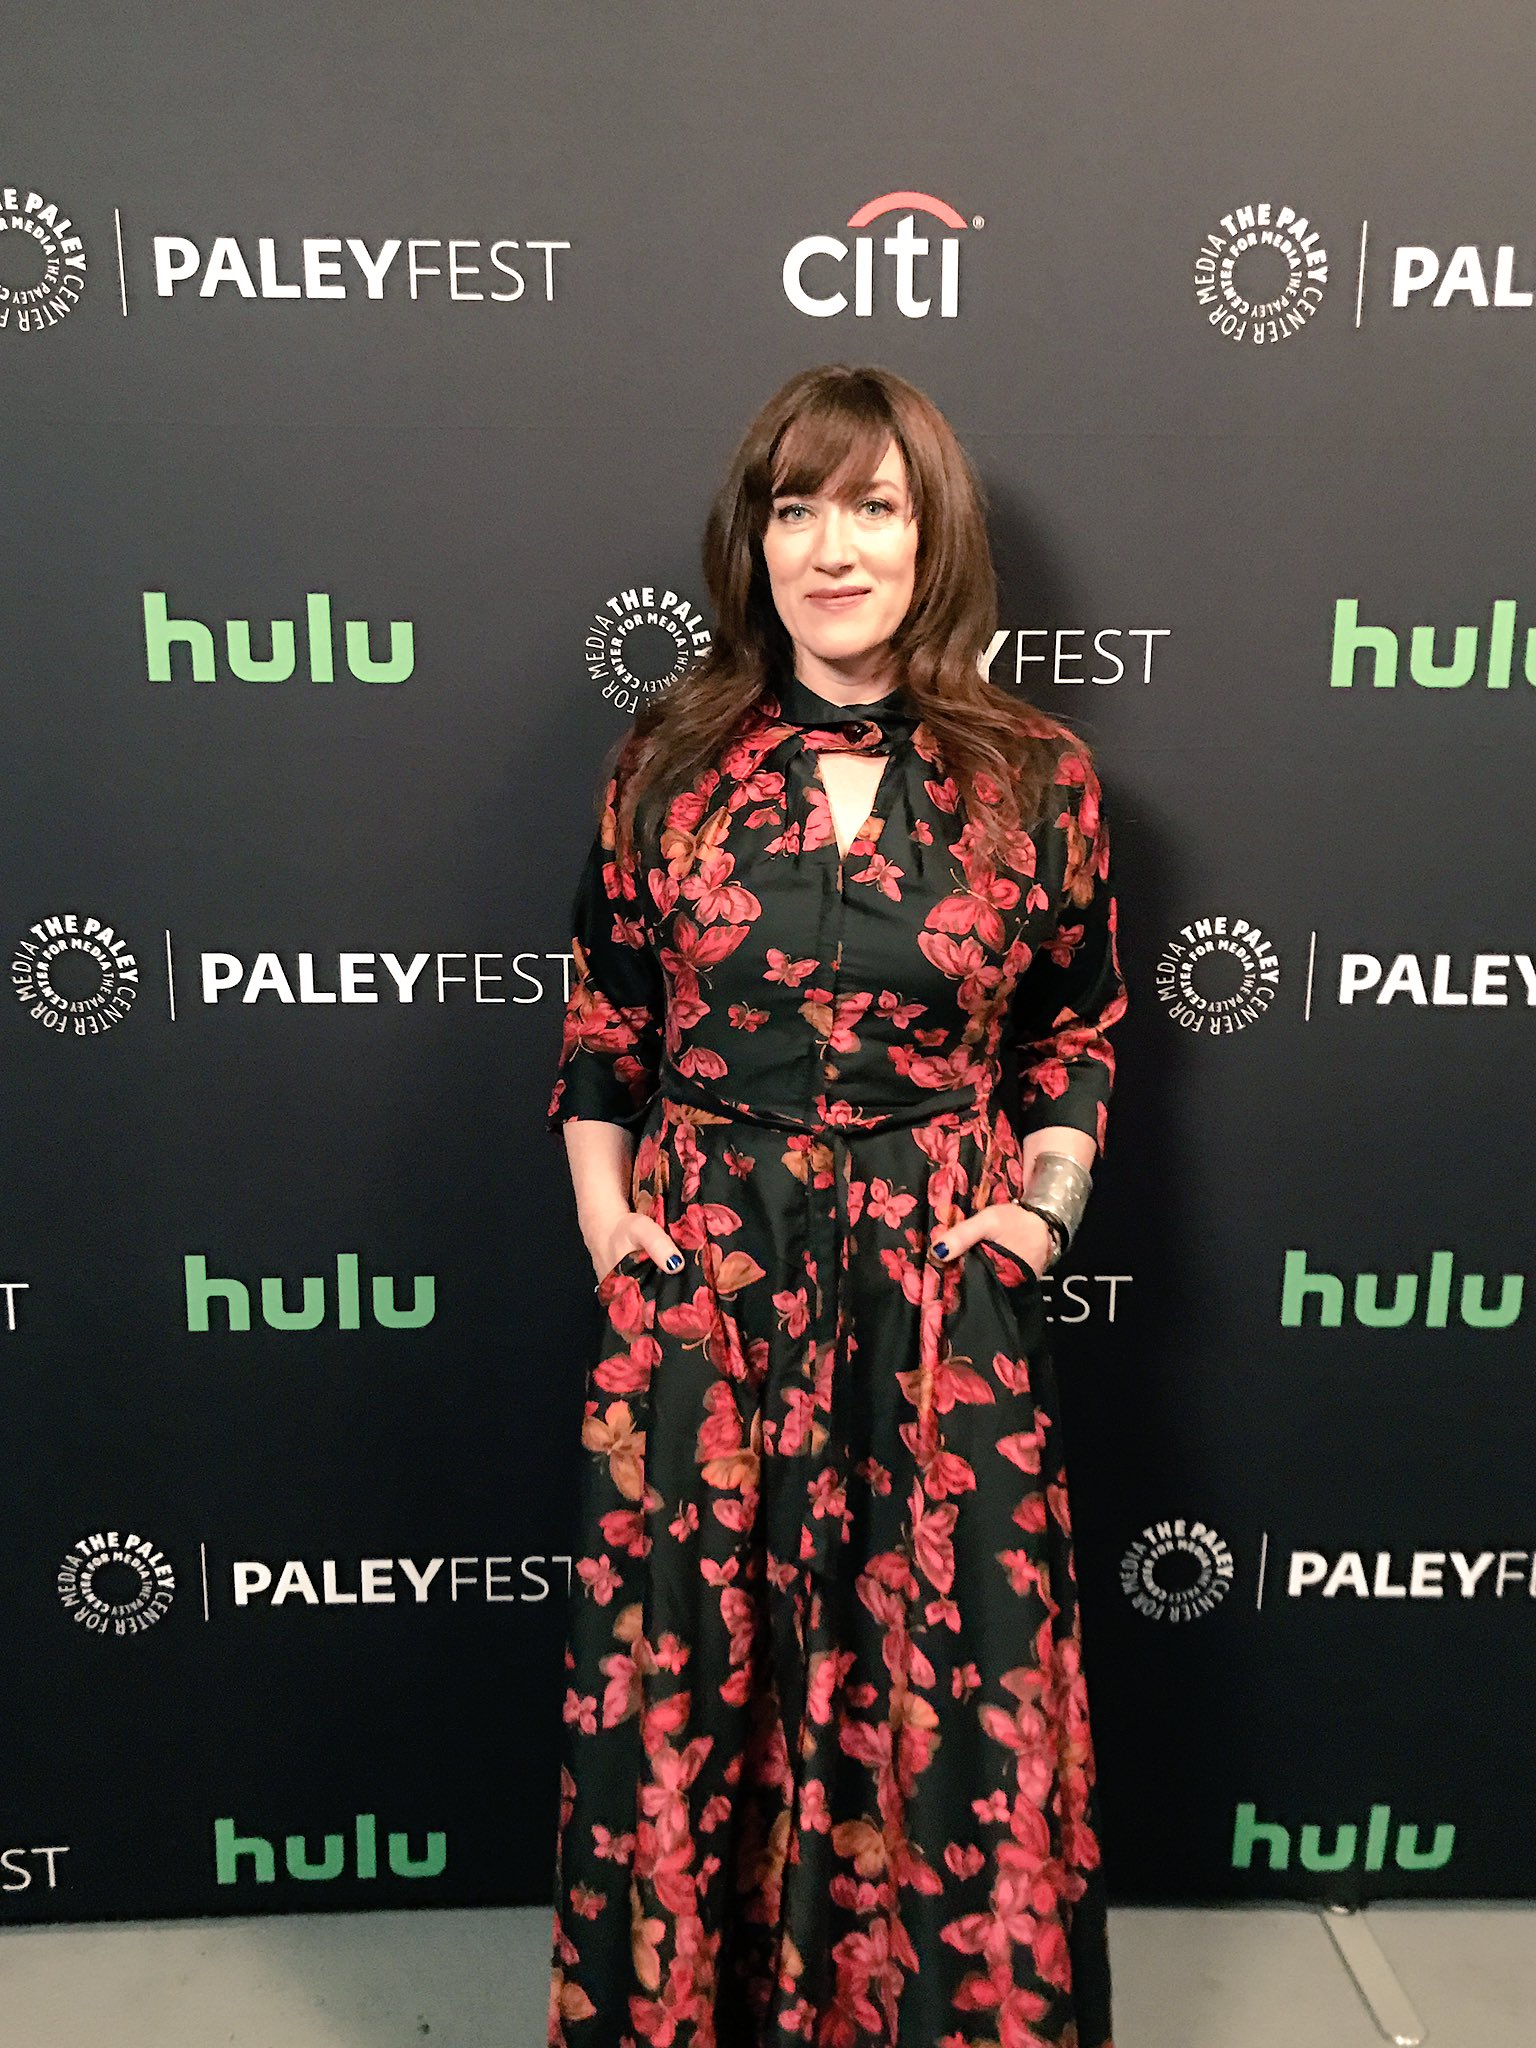 Good evening Maria Doyle Kennedy! So happy you're here at #PaleyFest! #OrphanBlack 📺🌟👯 https://t.co/r0mYljptOs